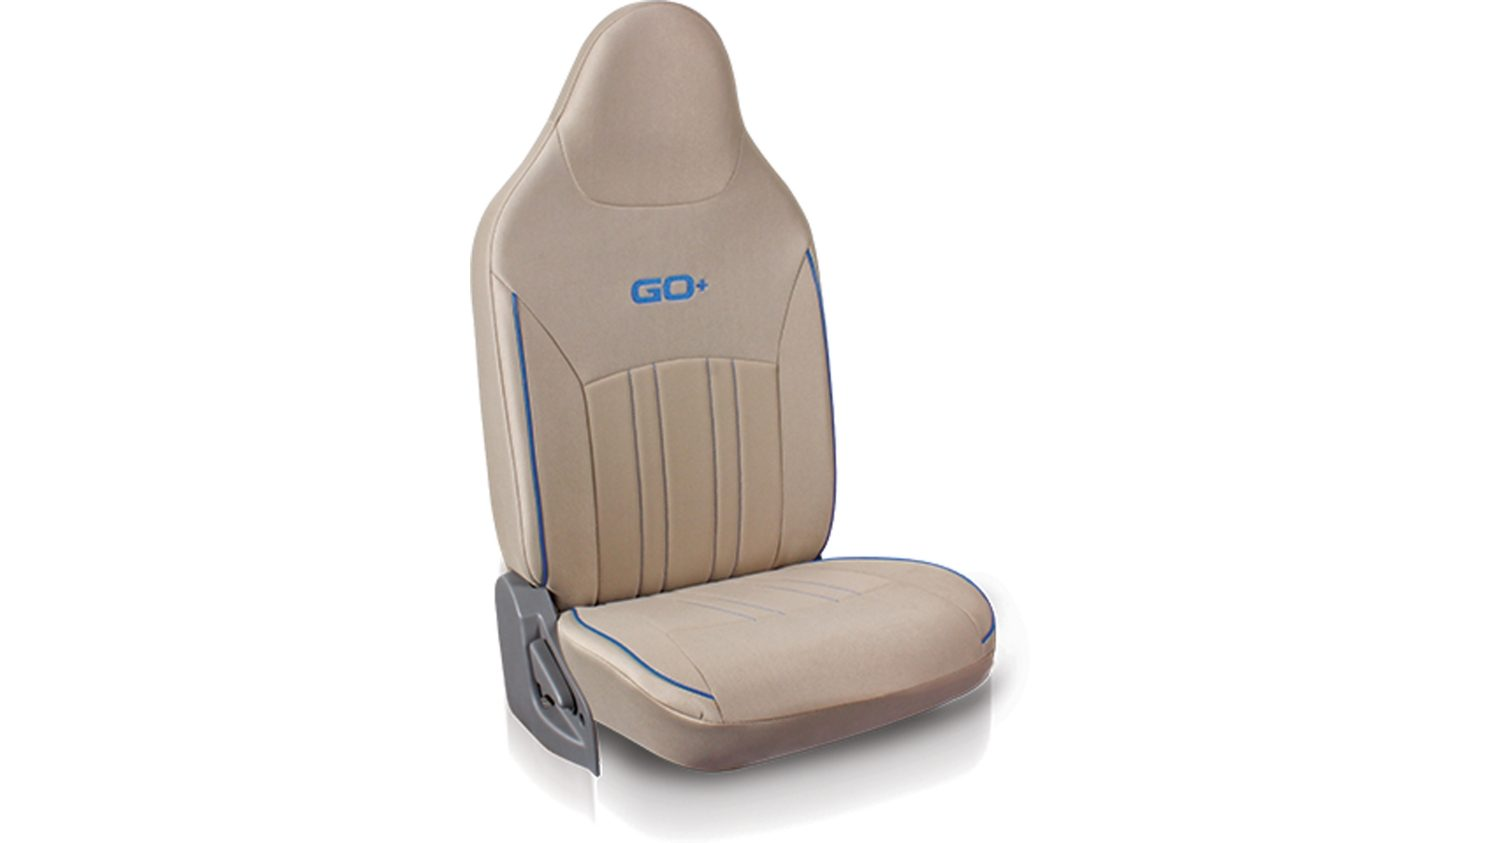 Seat cover Fabric - Beige + Blue piping